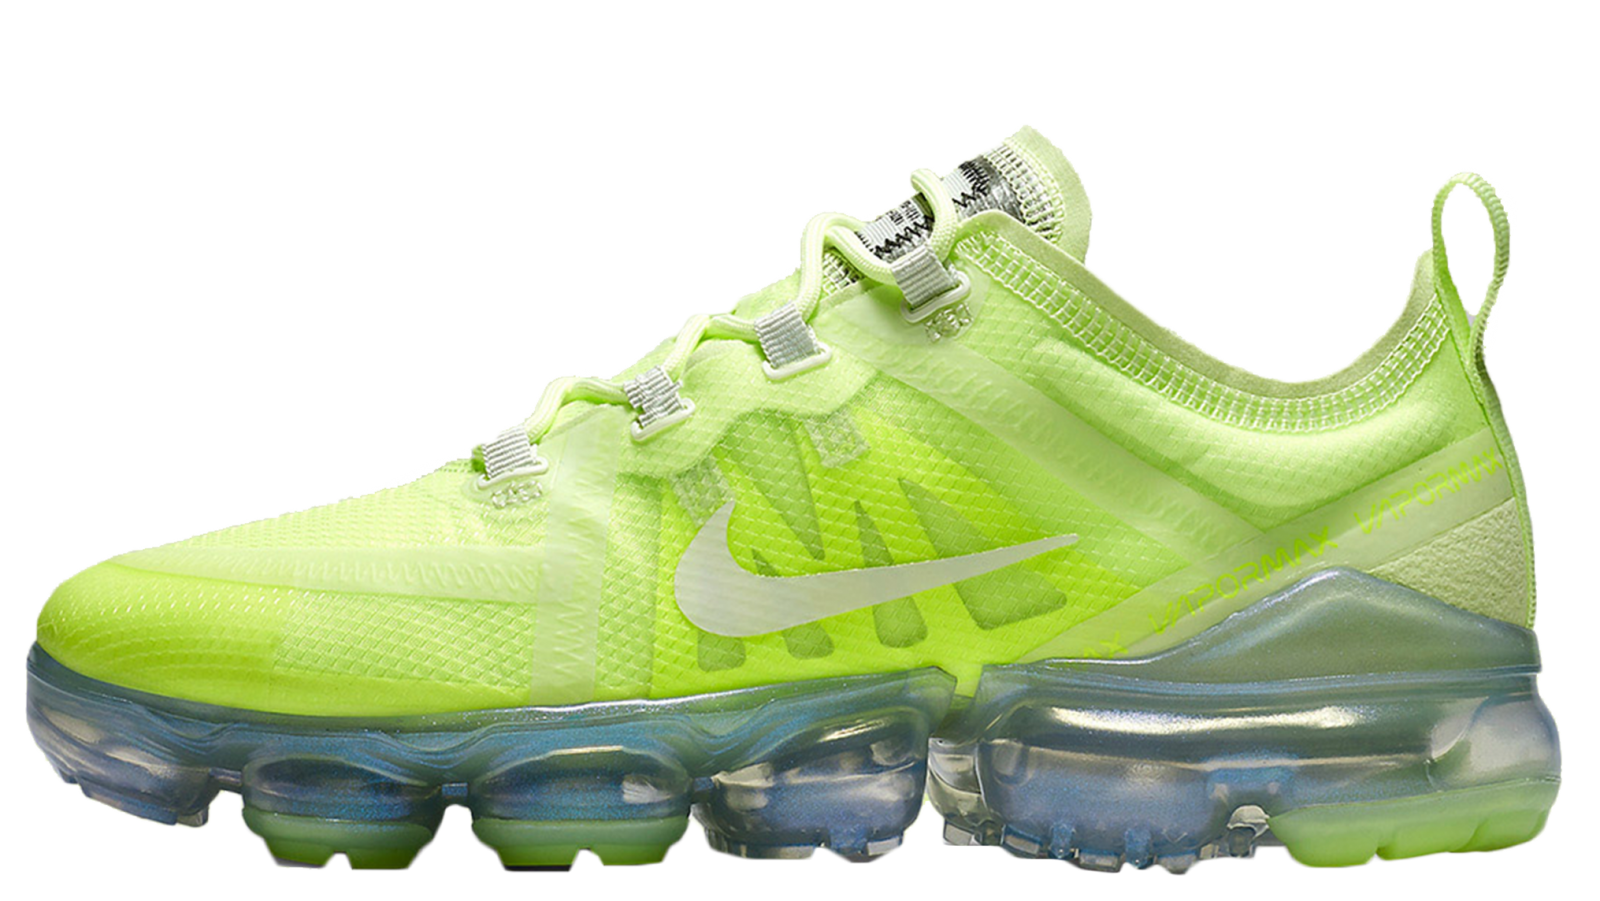 san francisco e4b8f eb2f1 Hit the links on this page to shop the Nike Air VaporMax 2019 Volt Glow  today! UK true DD MM YYYY